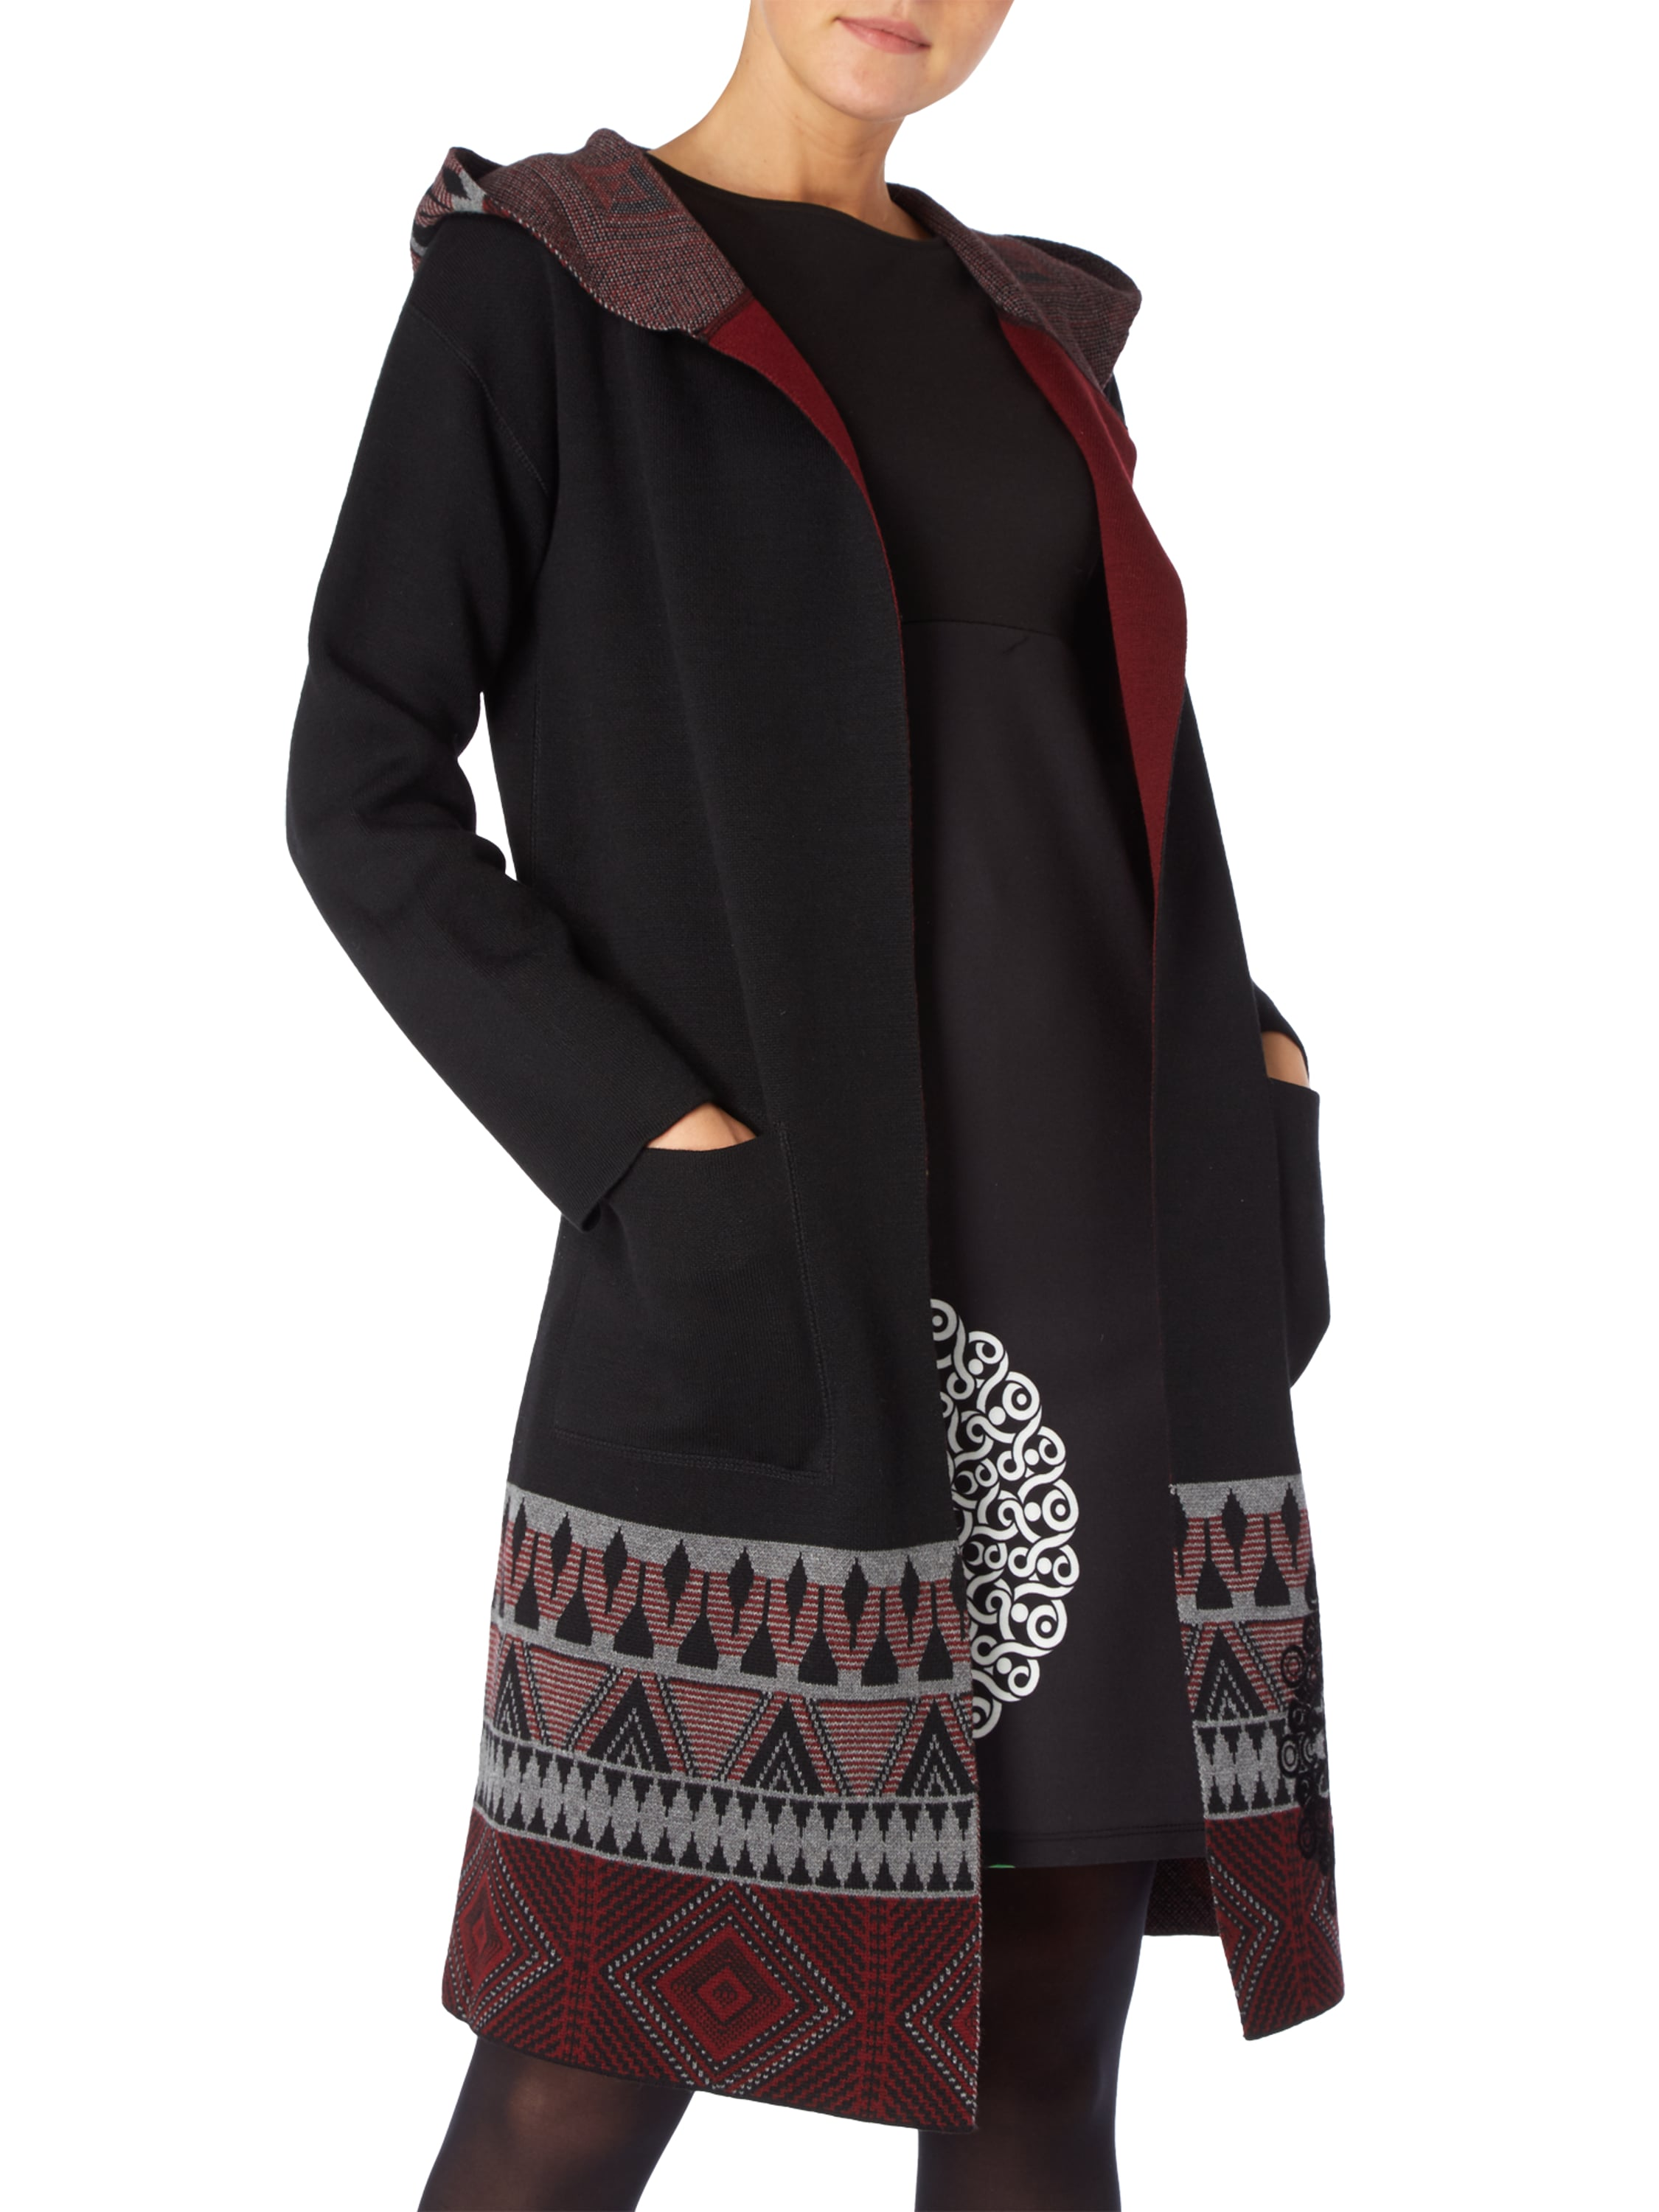 desigual cardigan mit ornamentalen flockprints in grau. Black Bedroom Furniture Sets. Home Design Ideas